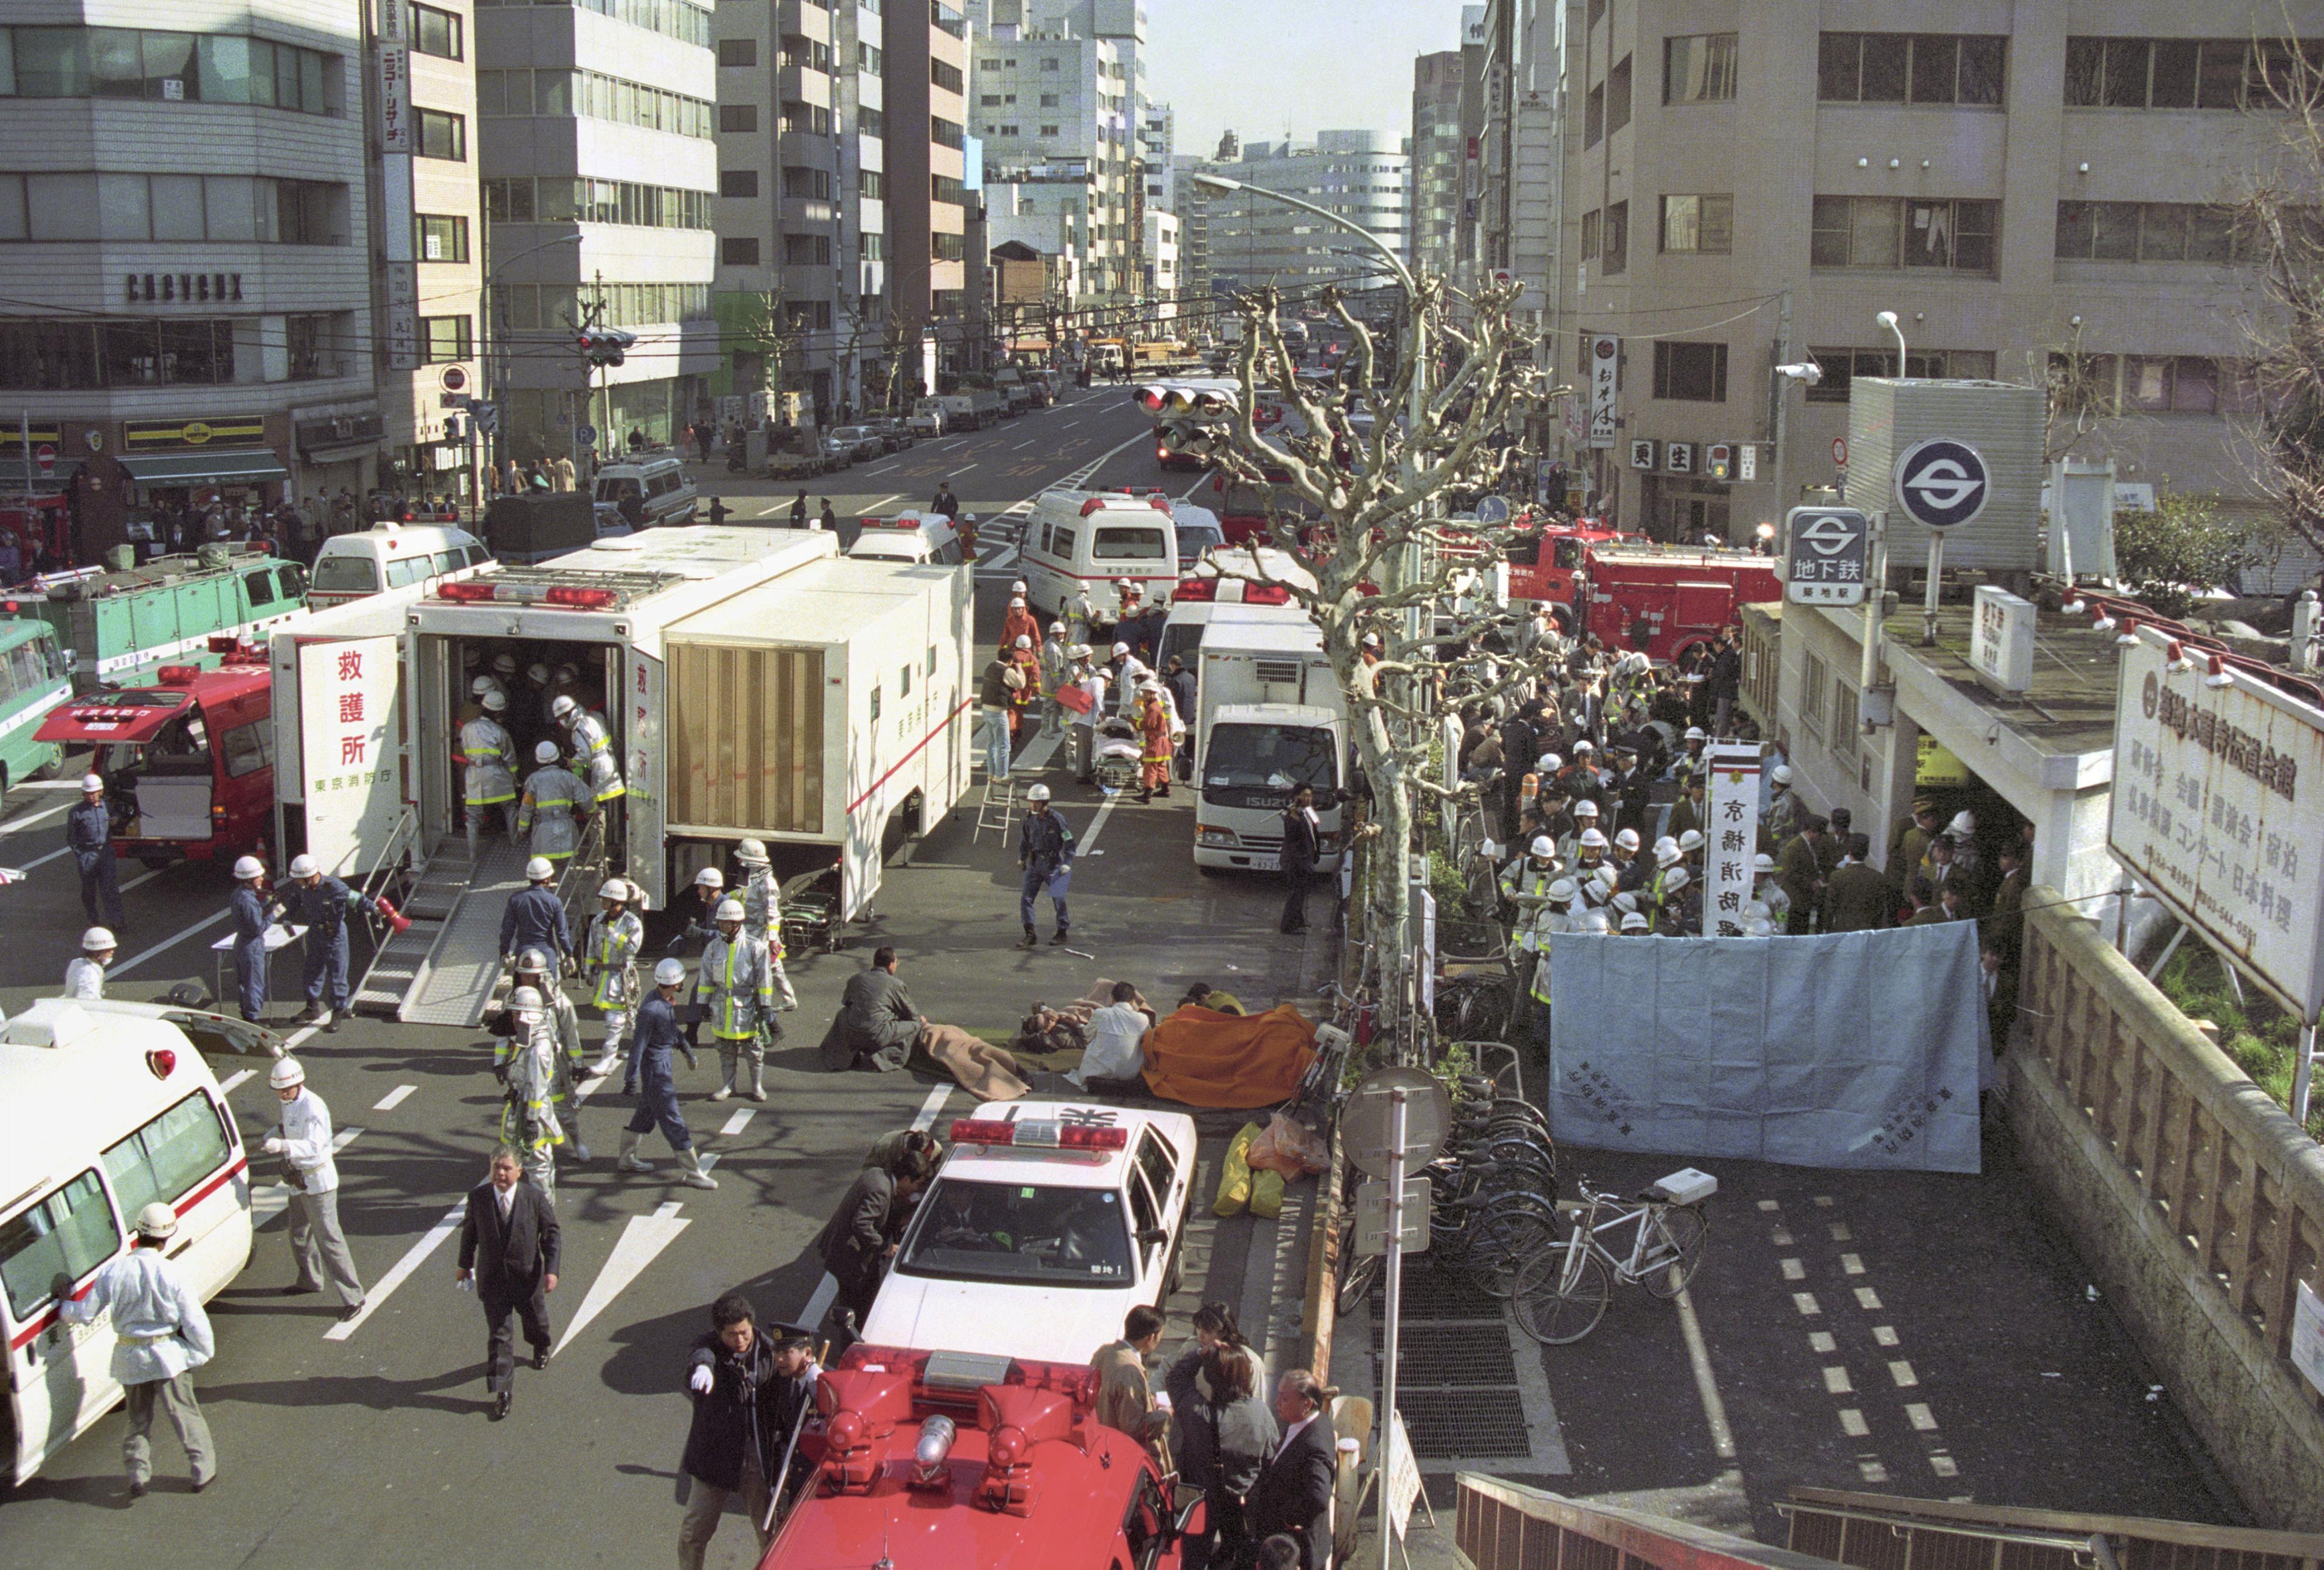 The injured of the deadly gas attack are treated by rescue workers near Tsukiji subway station in Tokyo